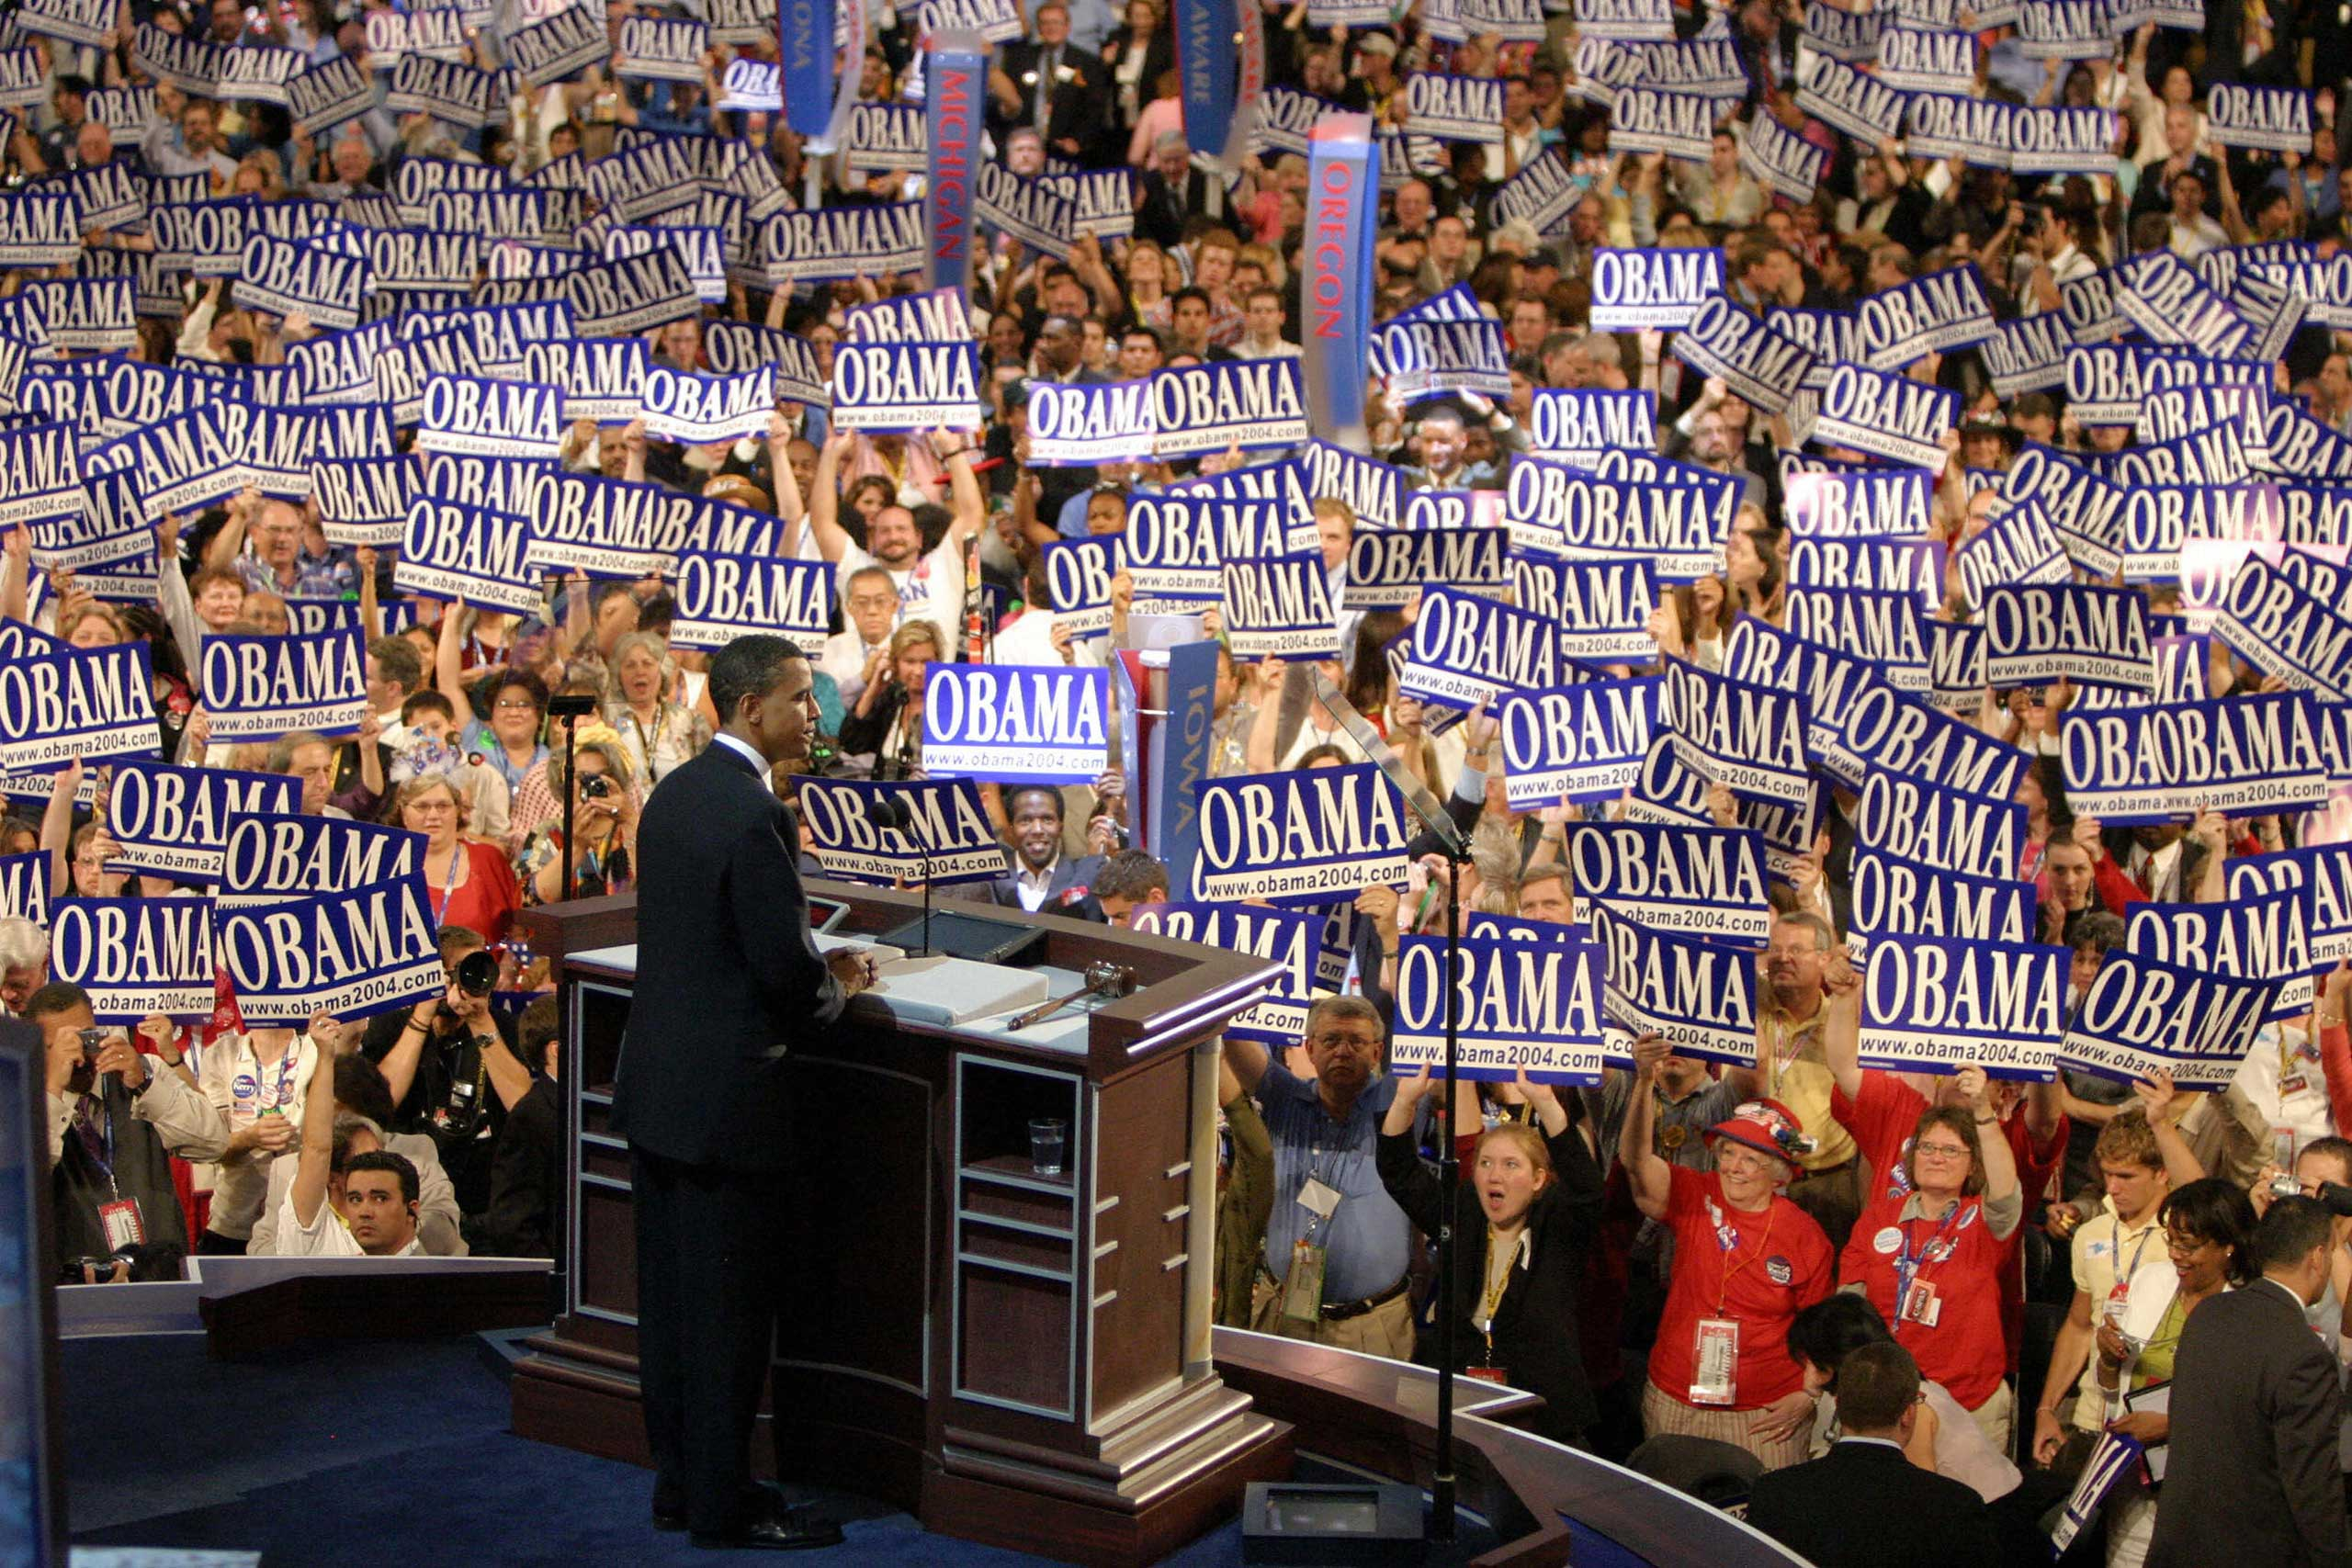 Barack Obama, US Senate candidate for Illinois, is greeted by delegates at the Democratic National Convention in Boston on July, 2004.